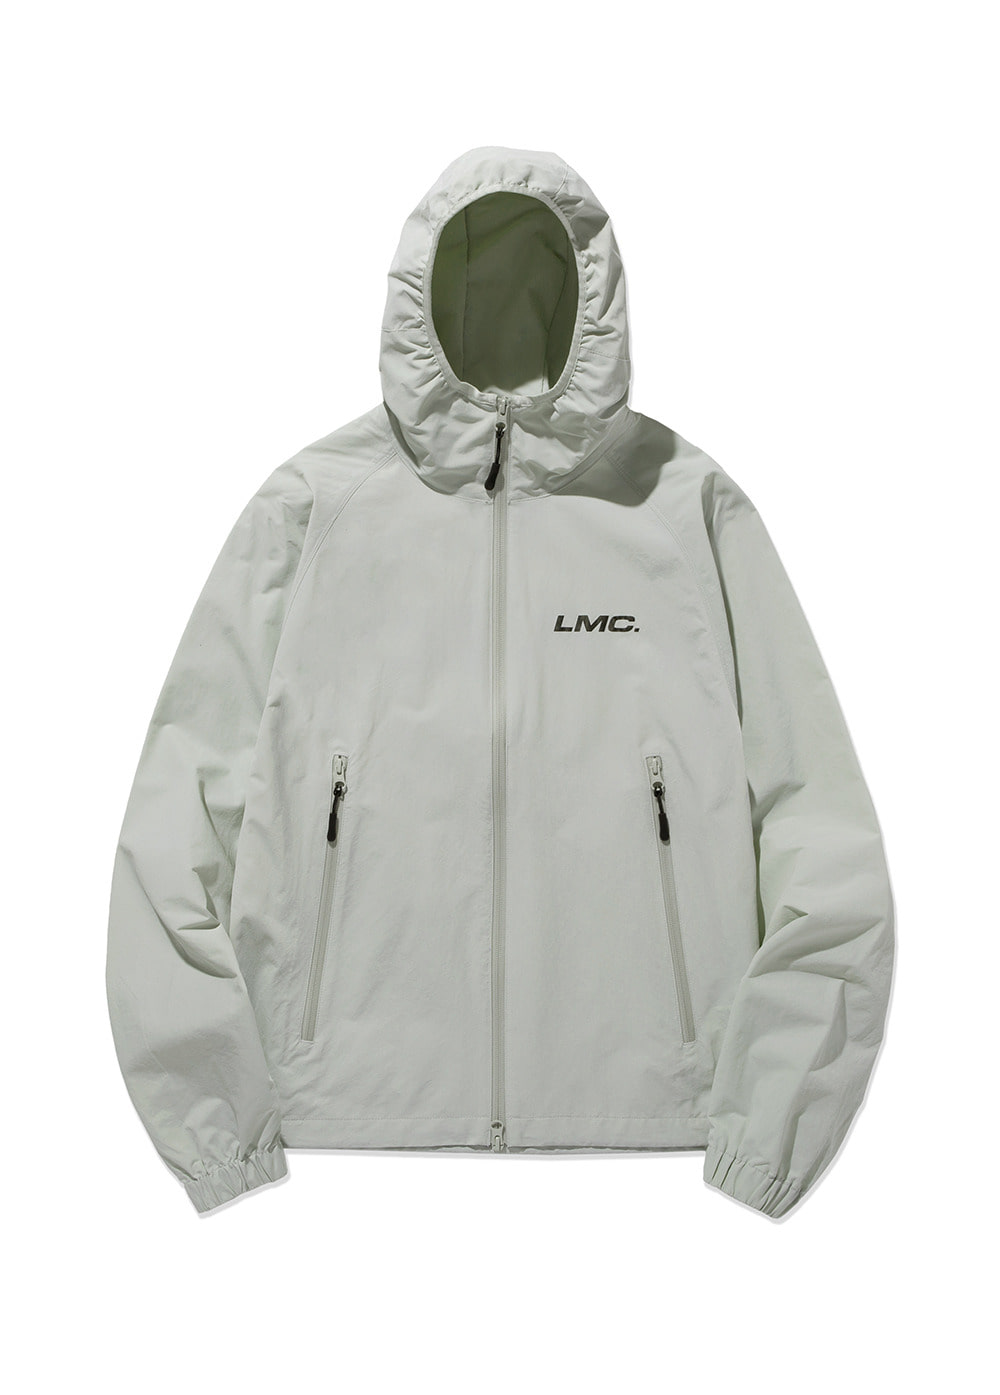 LMC LIGHT WINDBREAKER JACKET sand